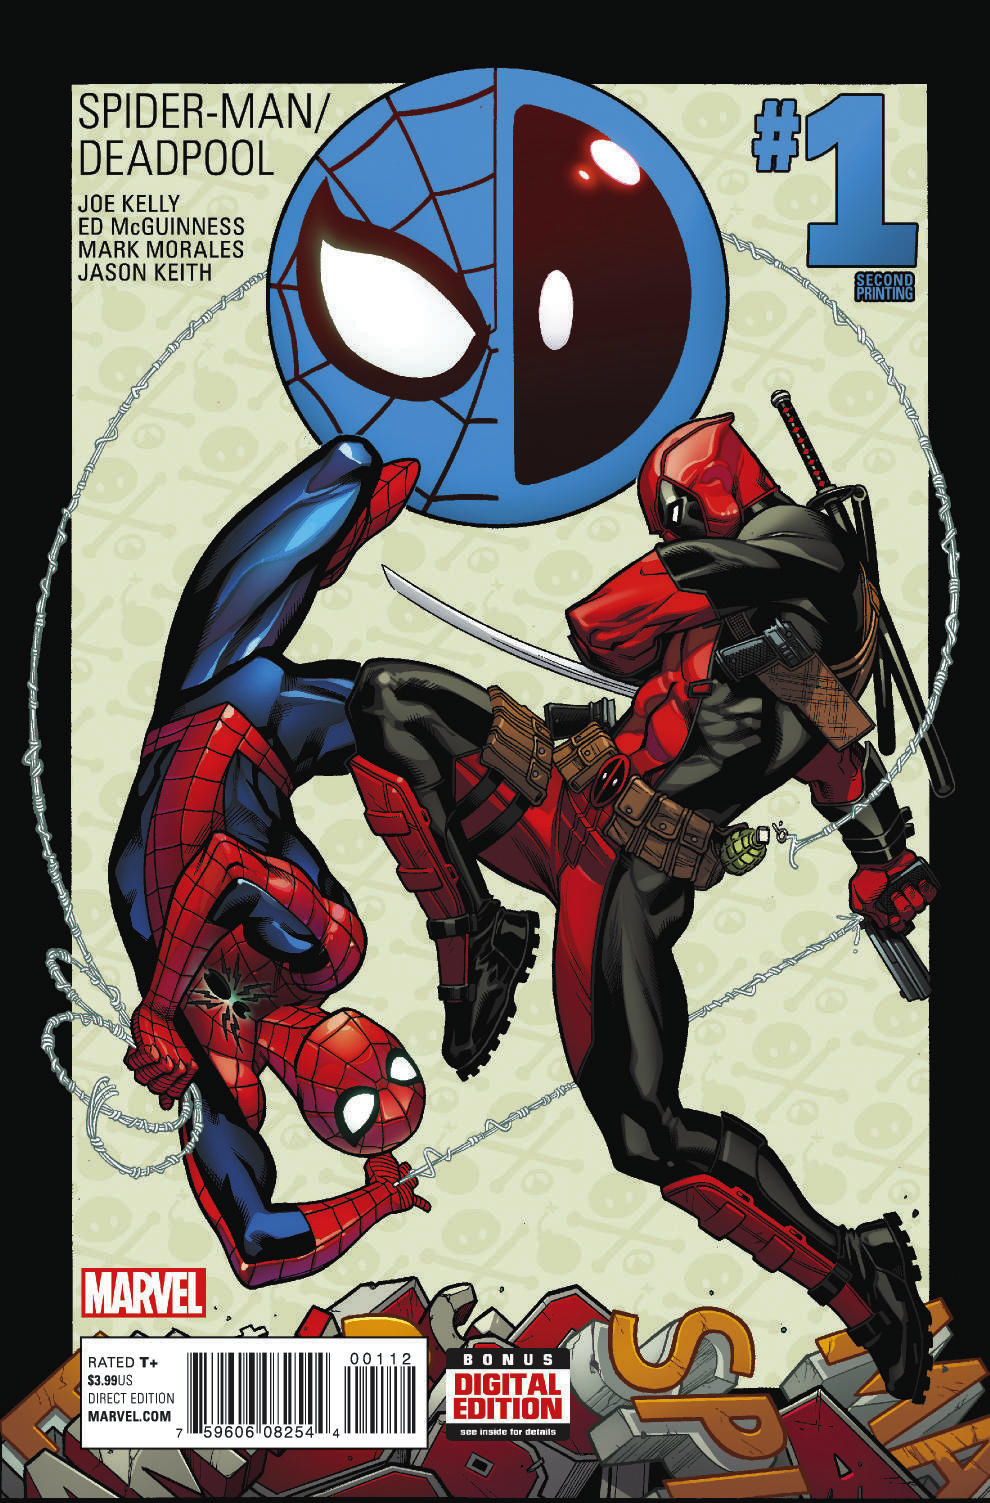 SPIDER-MAN DEADPOOL #1 MCGUINNESS 2ND PTG VAR